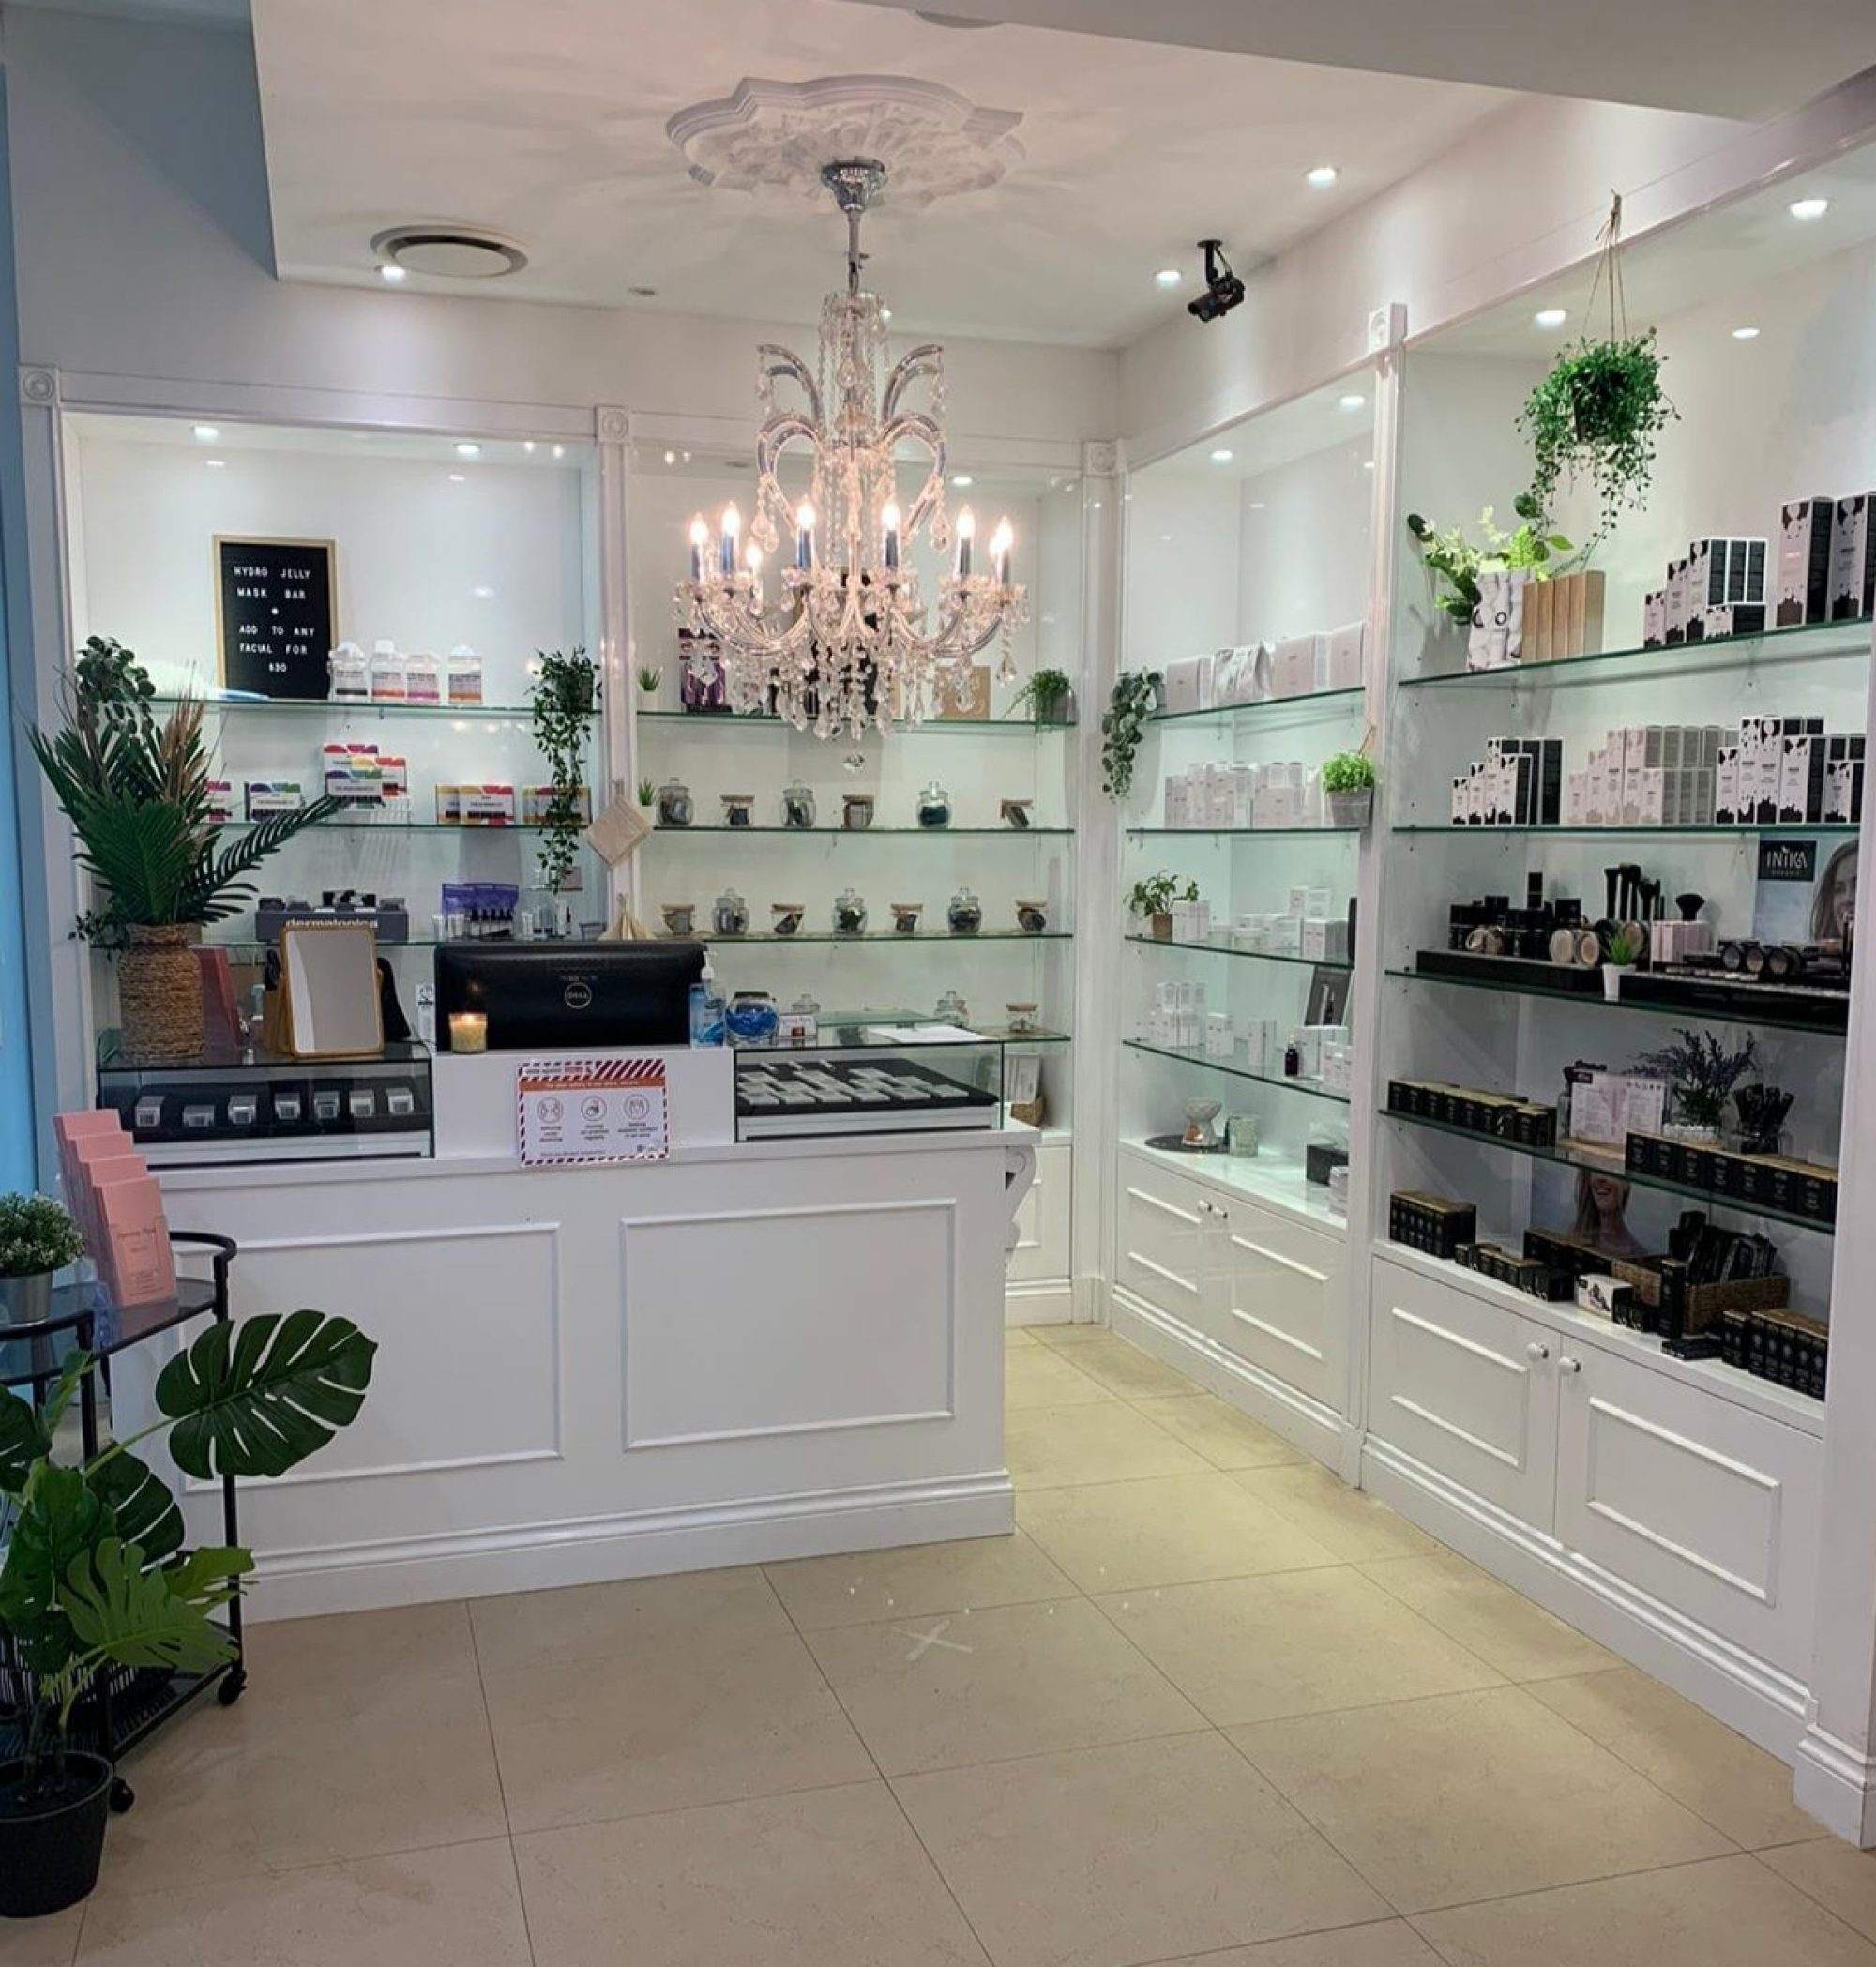 SPRING SPA SKIN AND BEAUTY